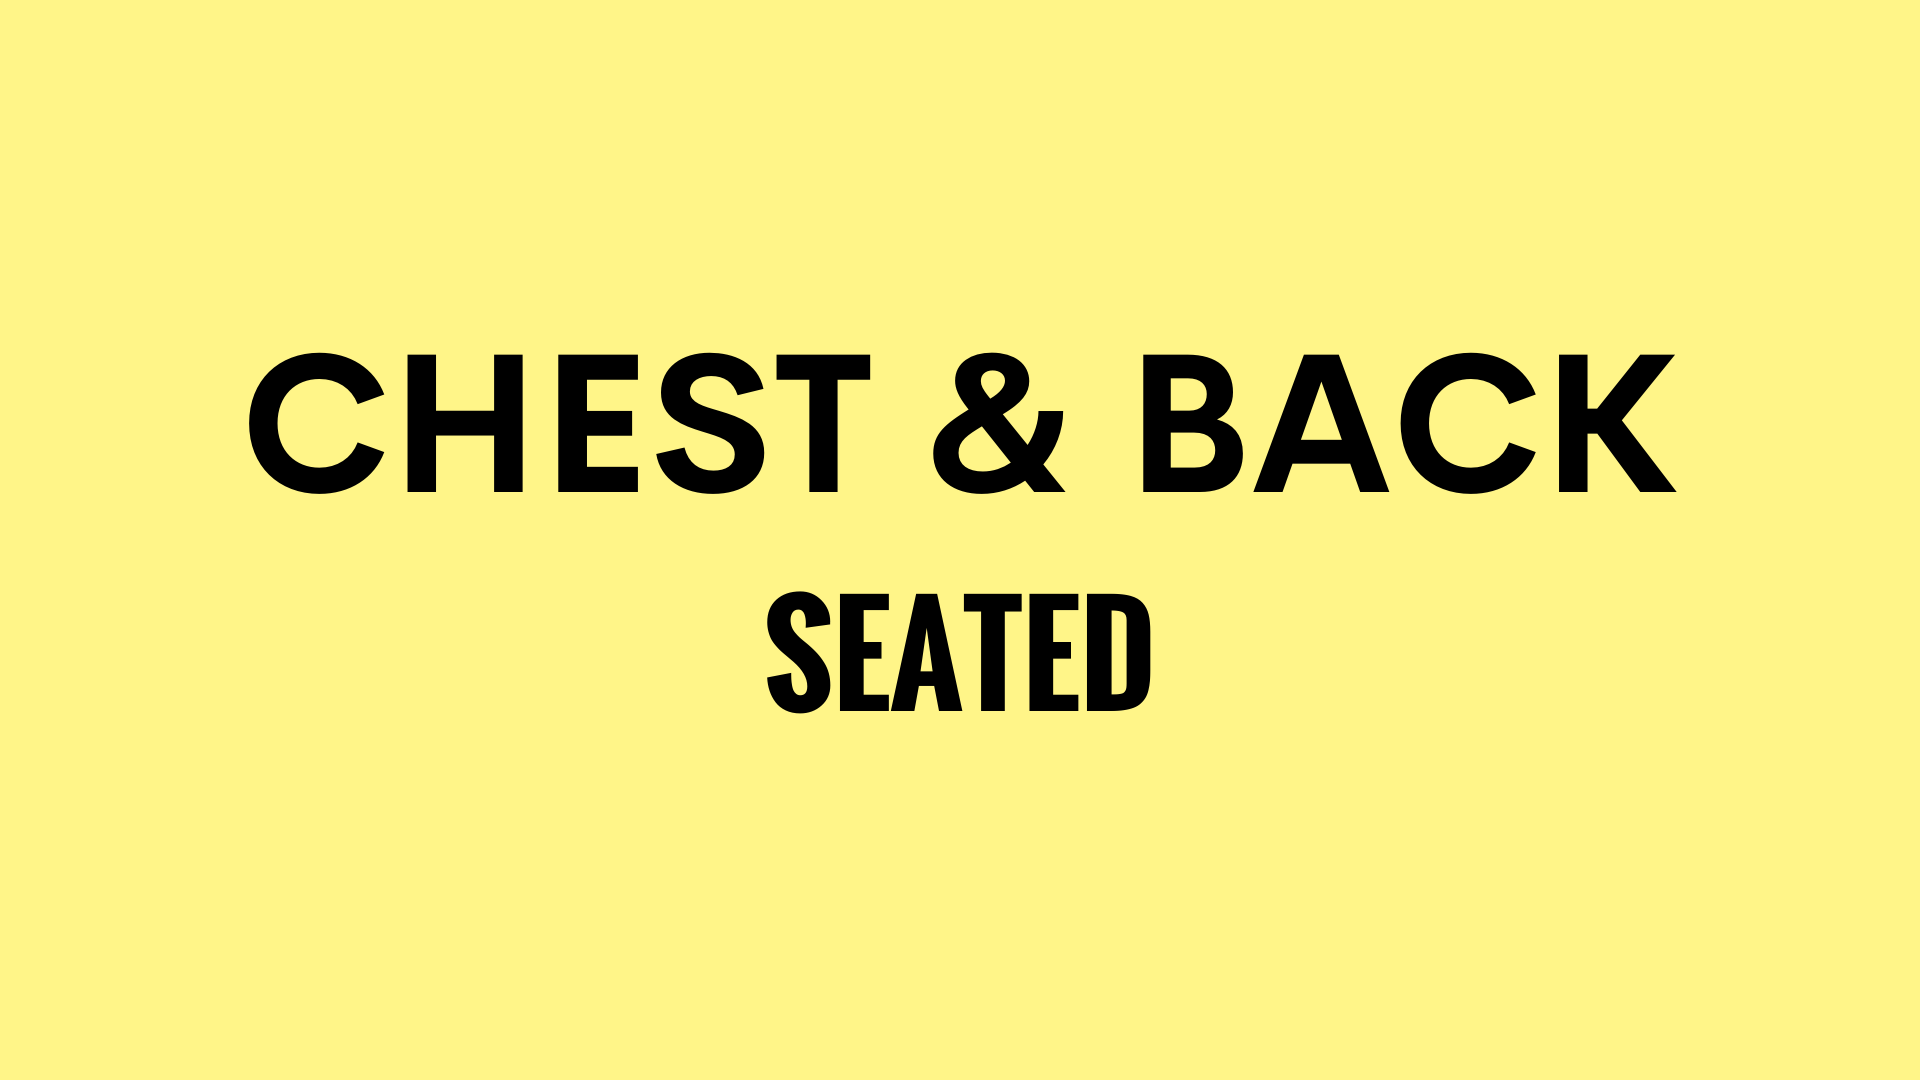 CHEST AND BACK SEATED